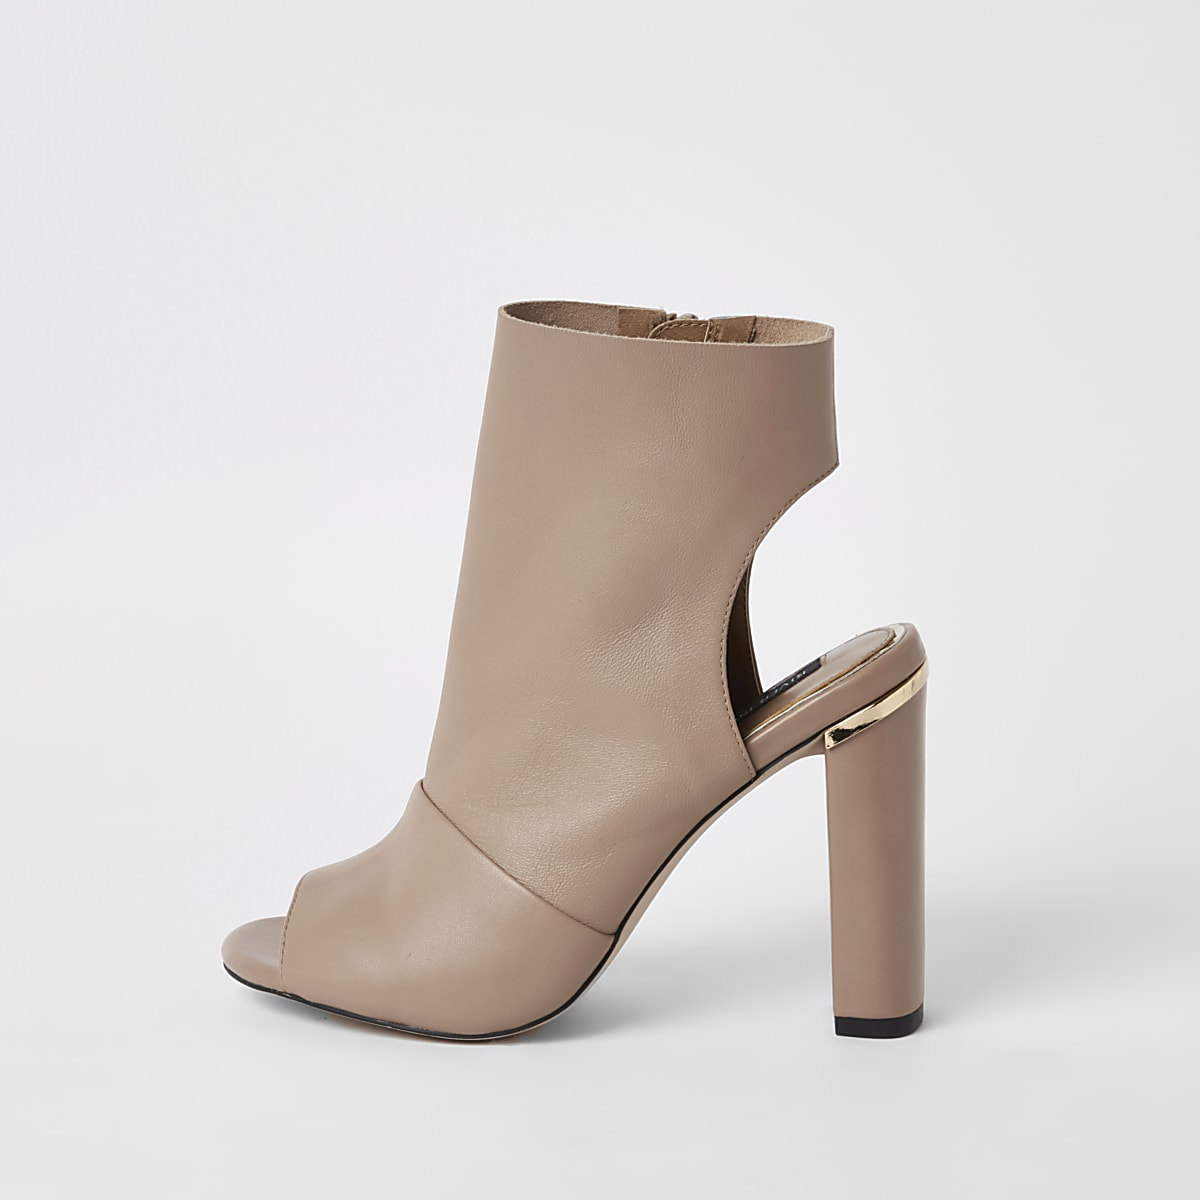 Light pink leather shoe boot